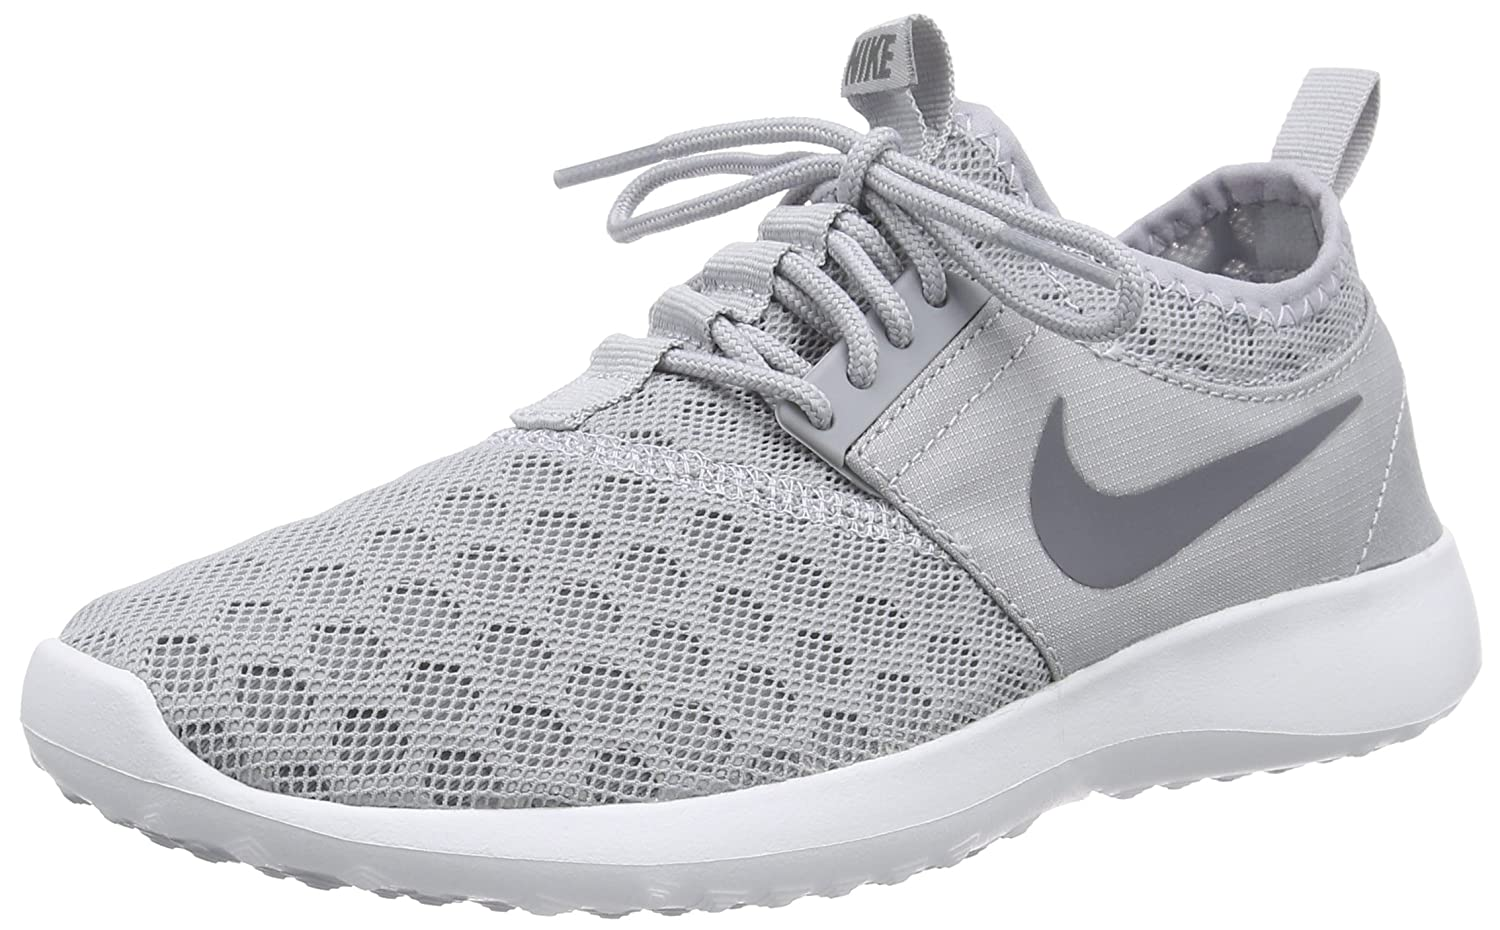 NIKE Women's Juvenate Running Shoe B00R54OV4K 8 B(M) US|Wolf Grey/Cool Grey/White 001